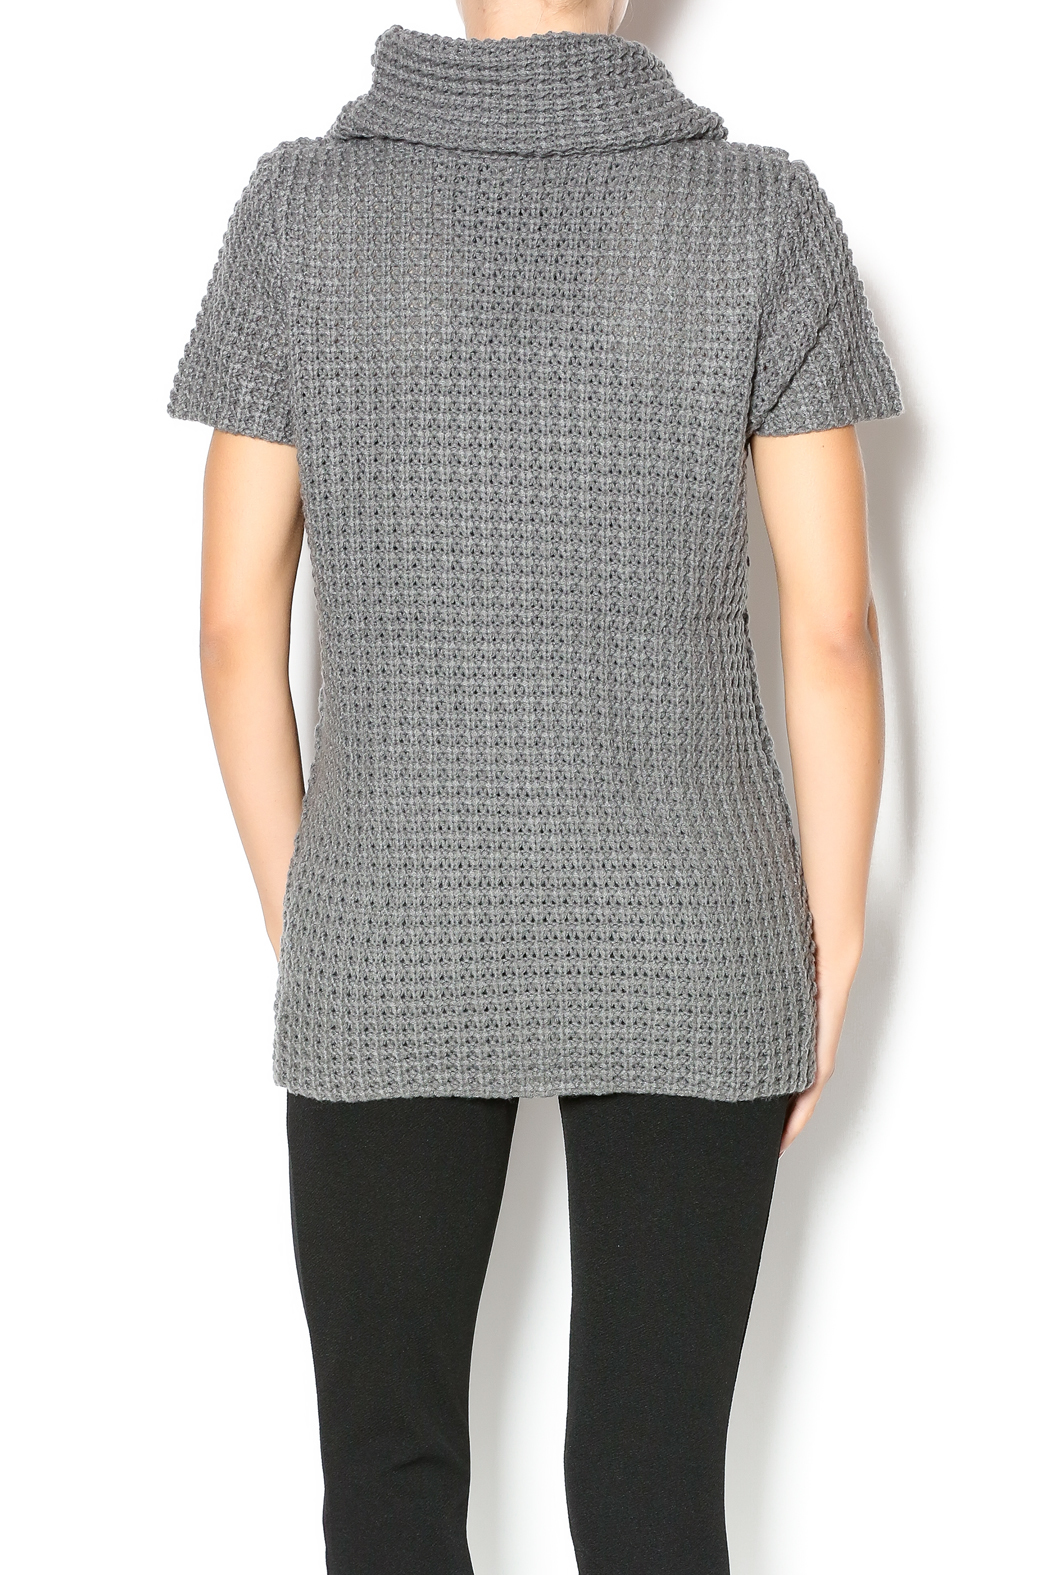 Honey Lee Gray Knit Sweater from Michigan by Glitz & Spurs ...